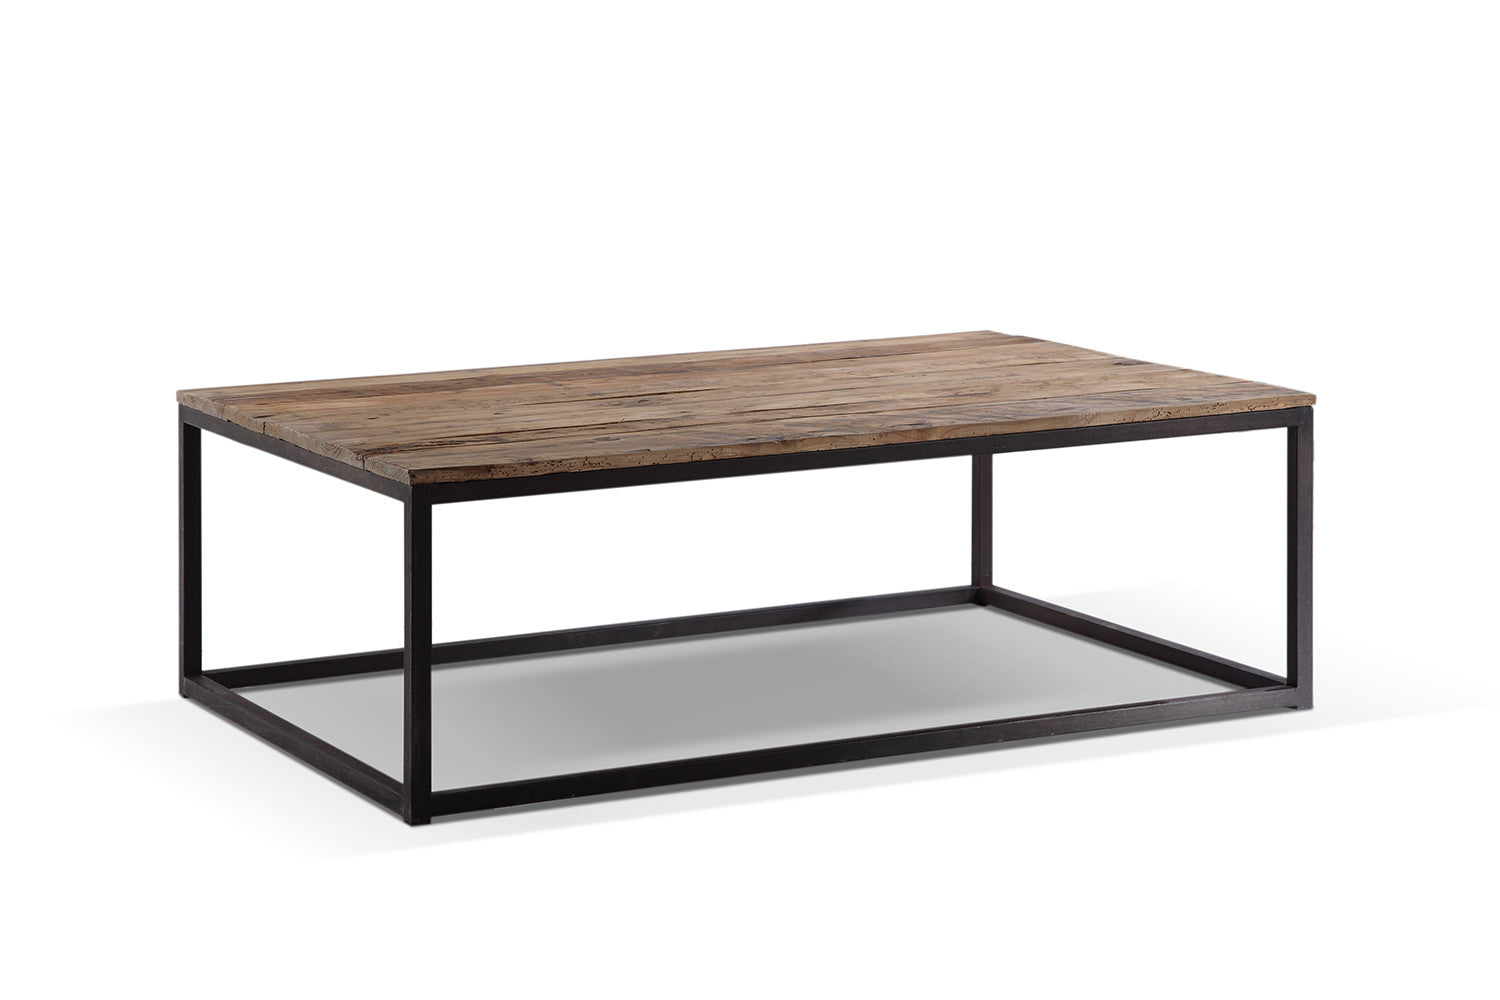 Table basse industrielle en m tal et bois rose moore for Table basse industrielle blanche